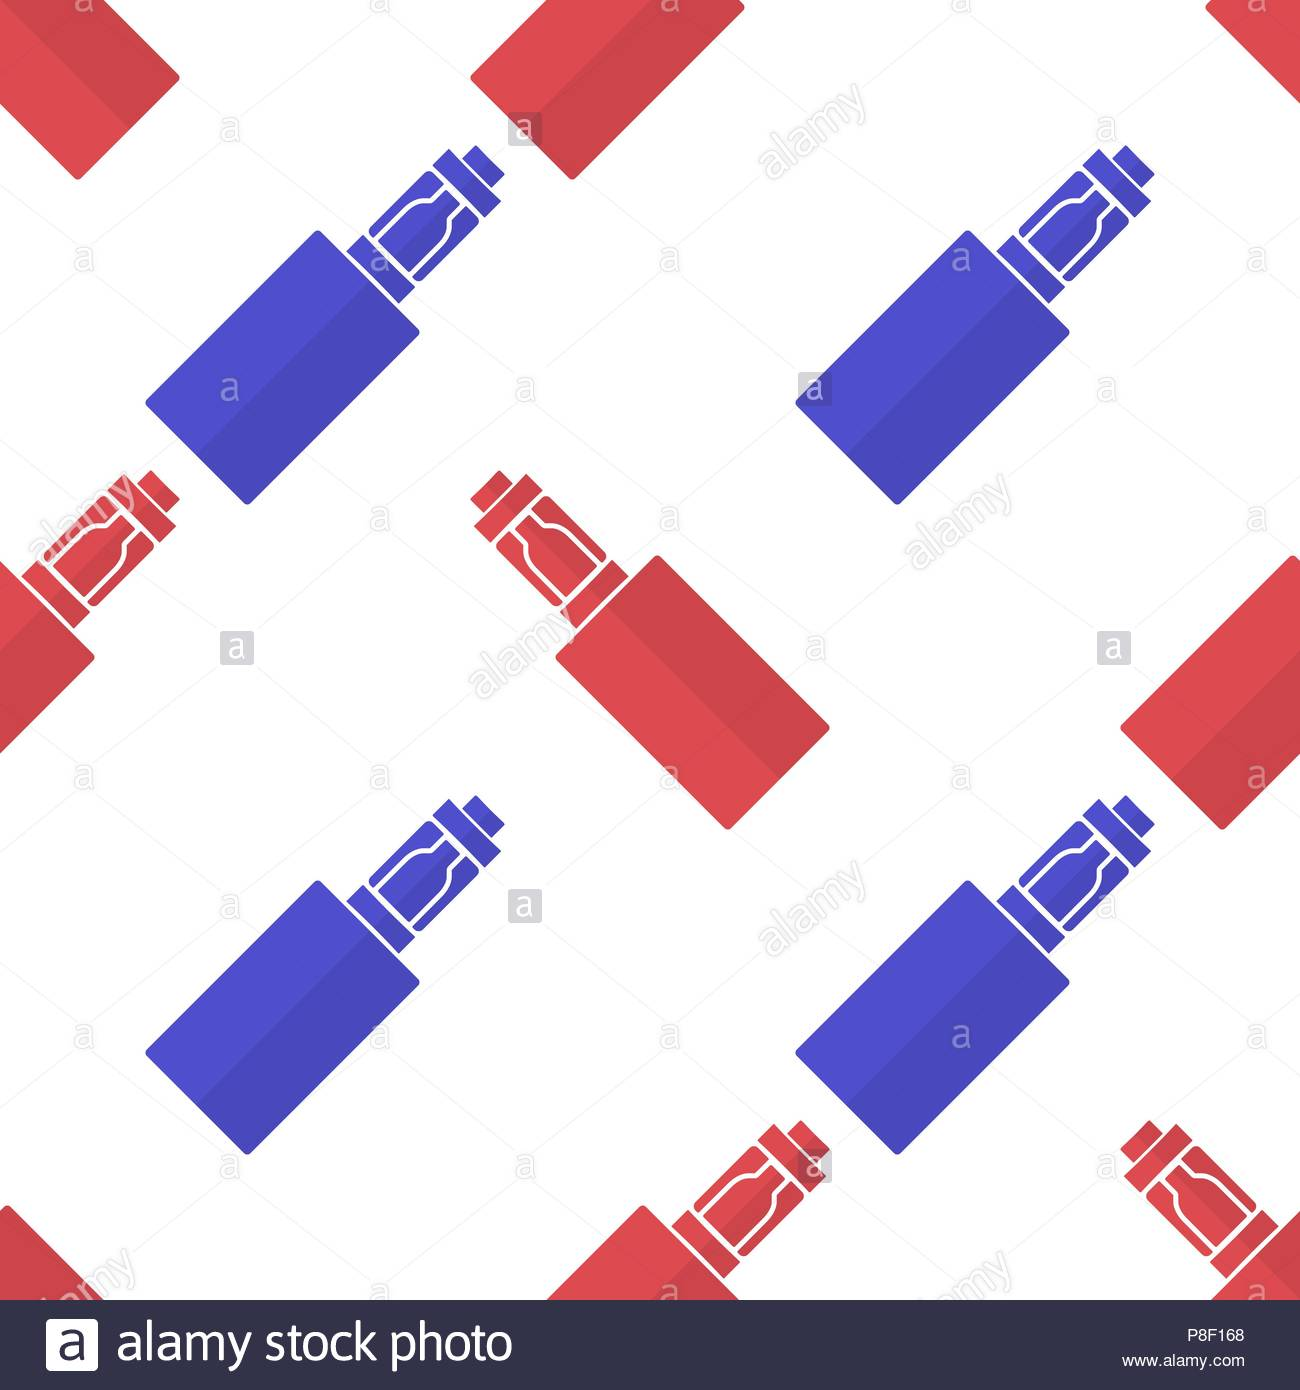 Background or pattern of red and blue electronic cigarettes. Vector illustration Stock Vector